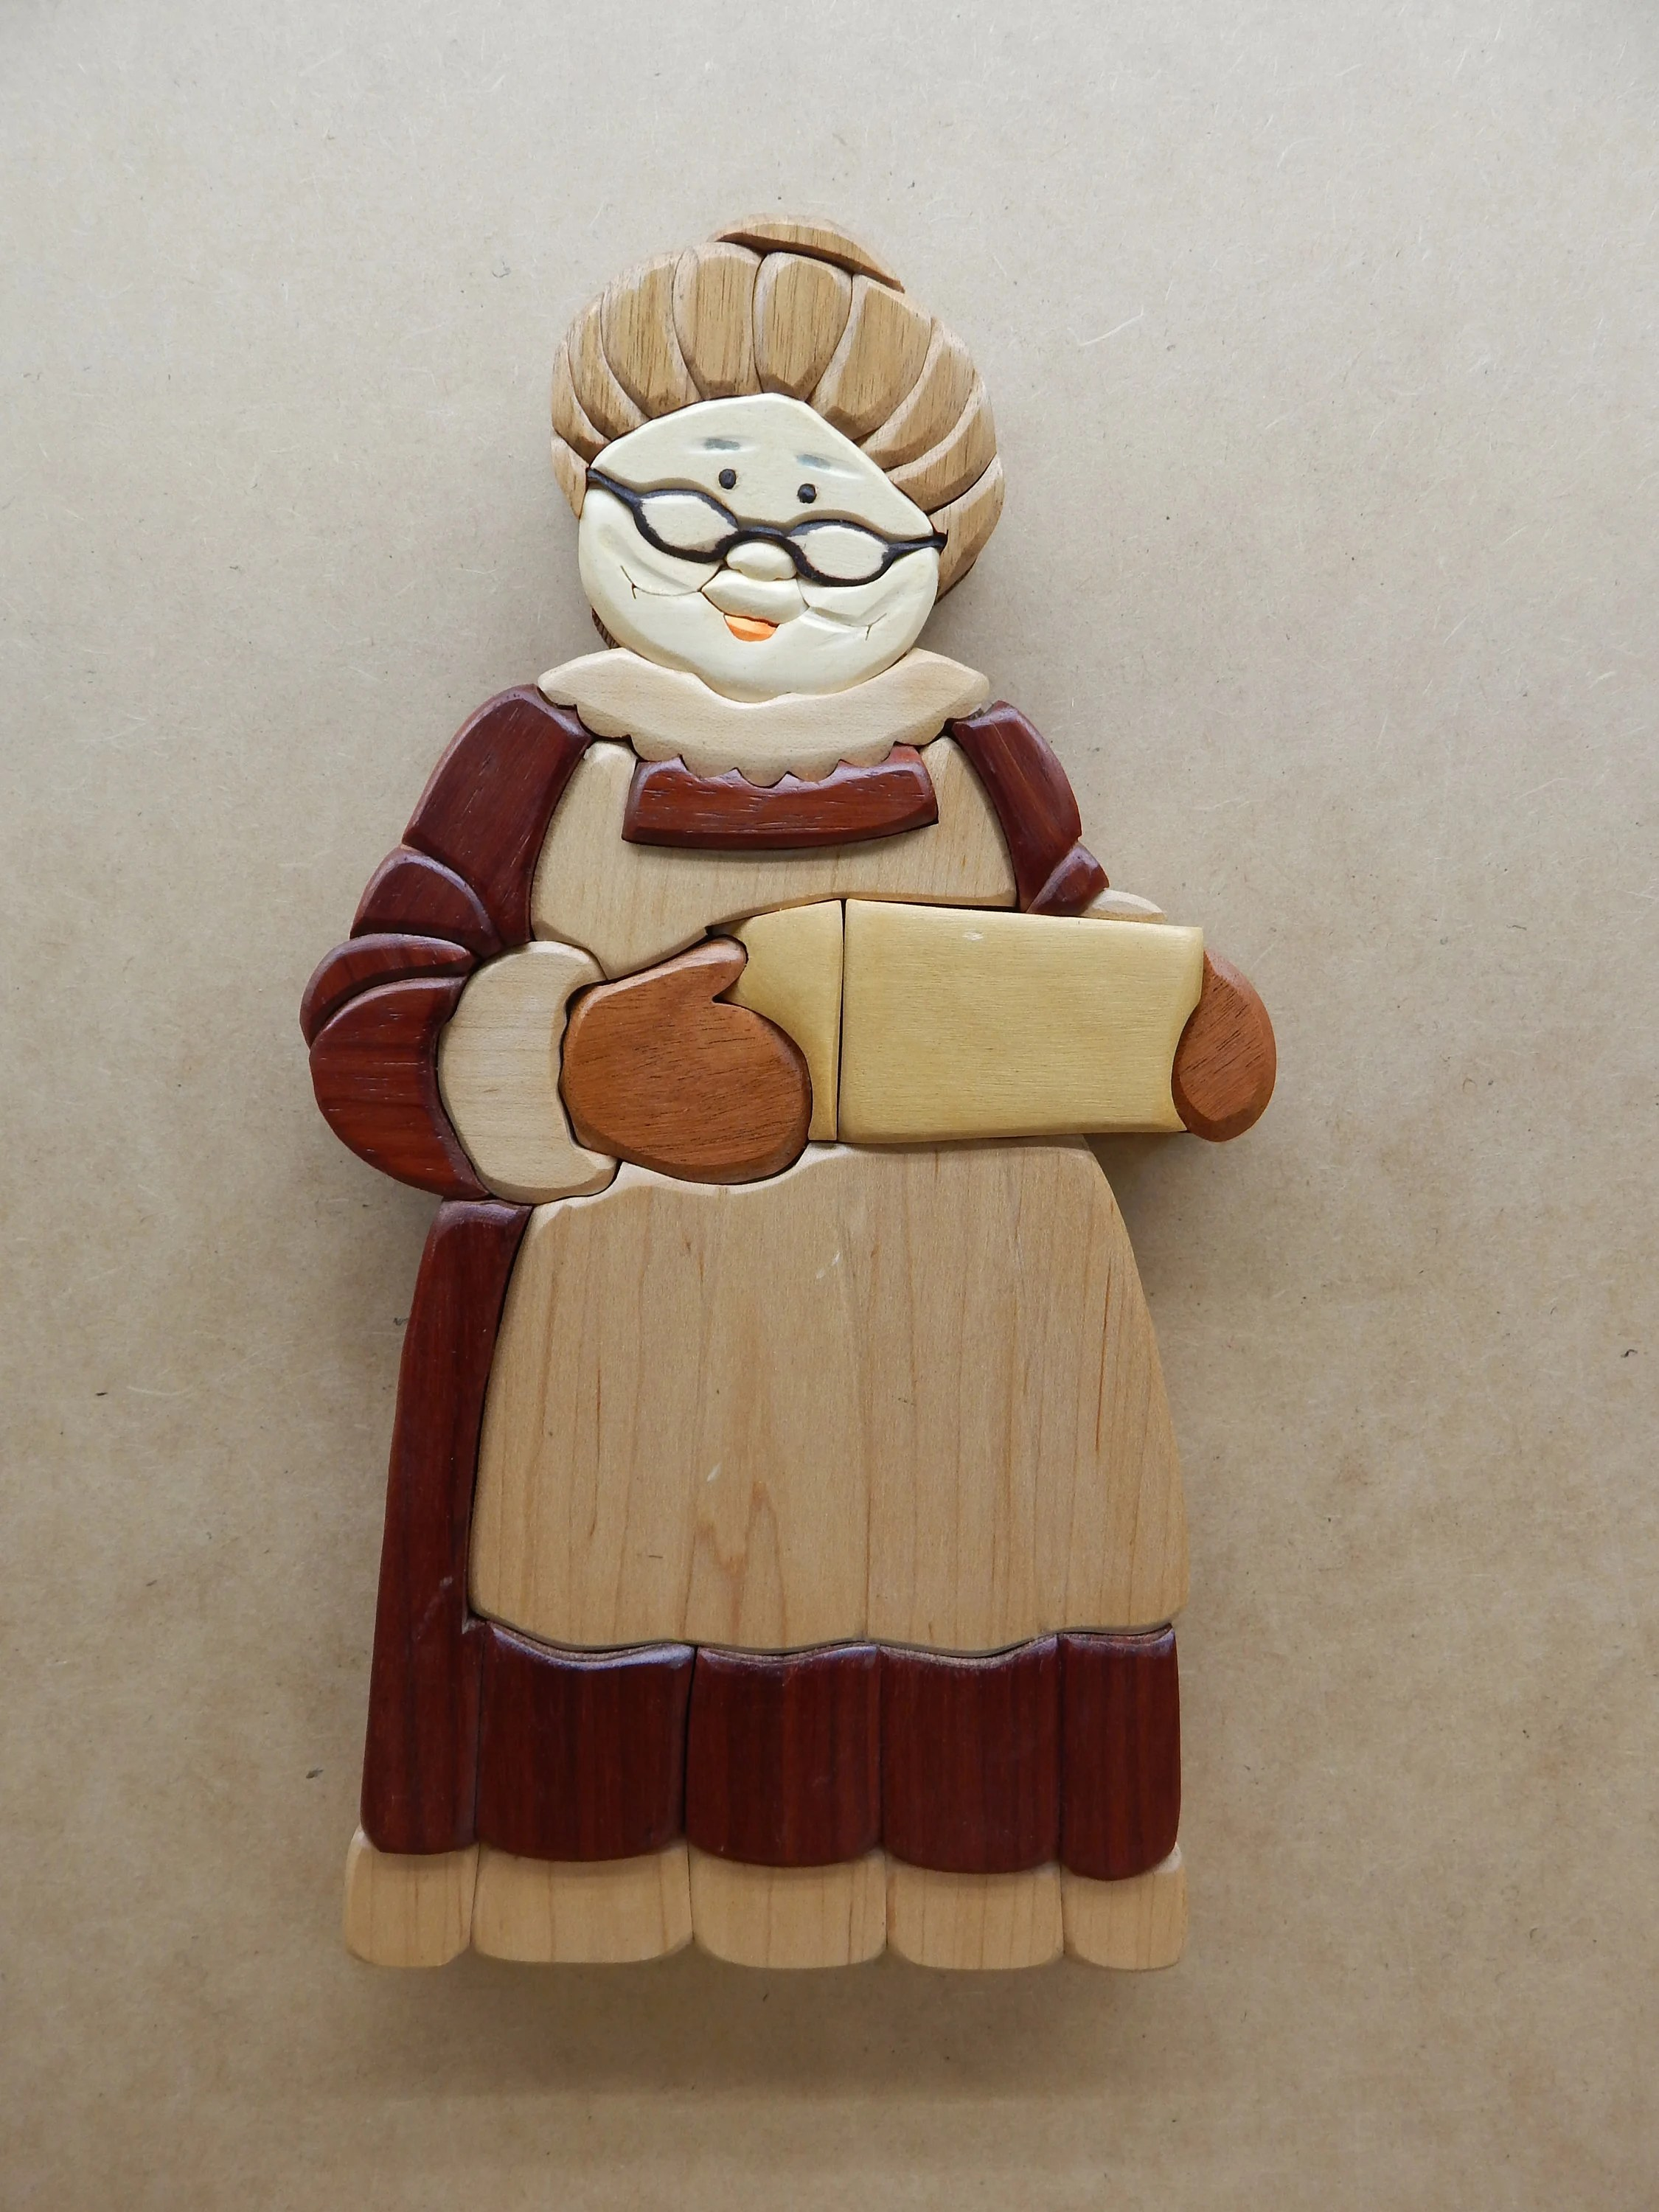 Arte En Madera Intarsia Mrs Claus Wood Intarsia Wall Hanging Scroll Saw Art